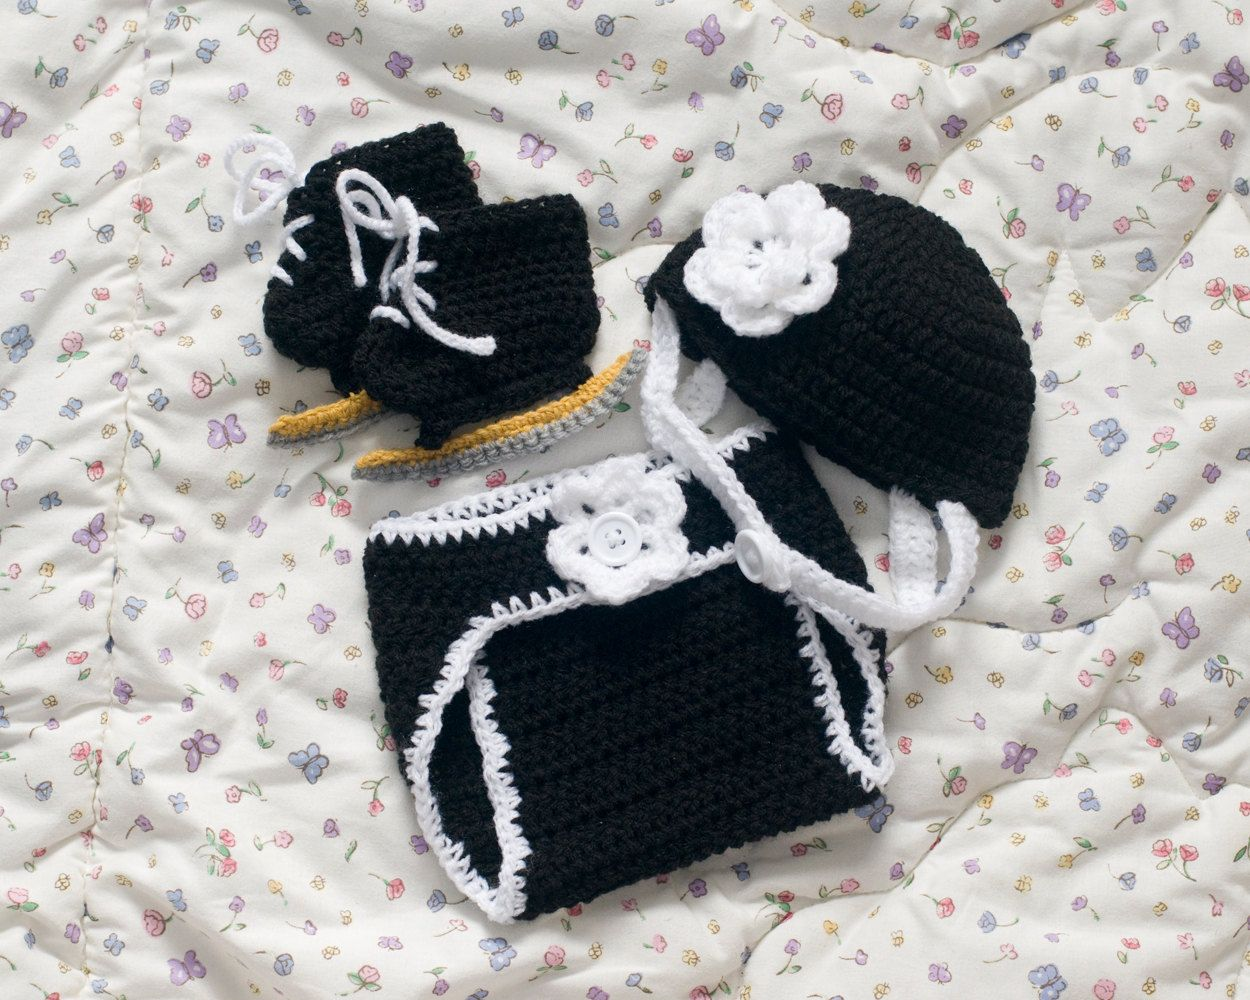 SPEED SKATING OUTFIT Baby Girl Speed Skating Helmet Black White, Crocheted Speed Skate Booties, Baby Girls Knit Speed Skating Diaper Cover by Grandmabilt on Etsy